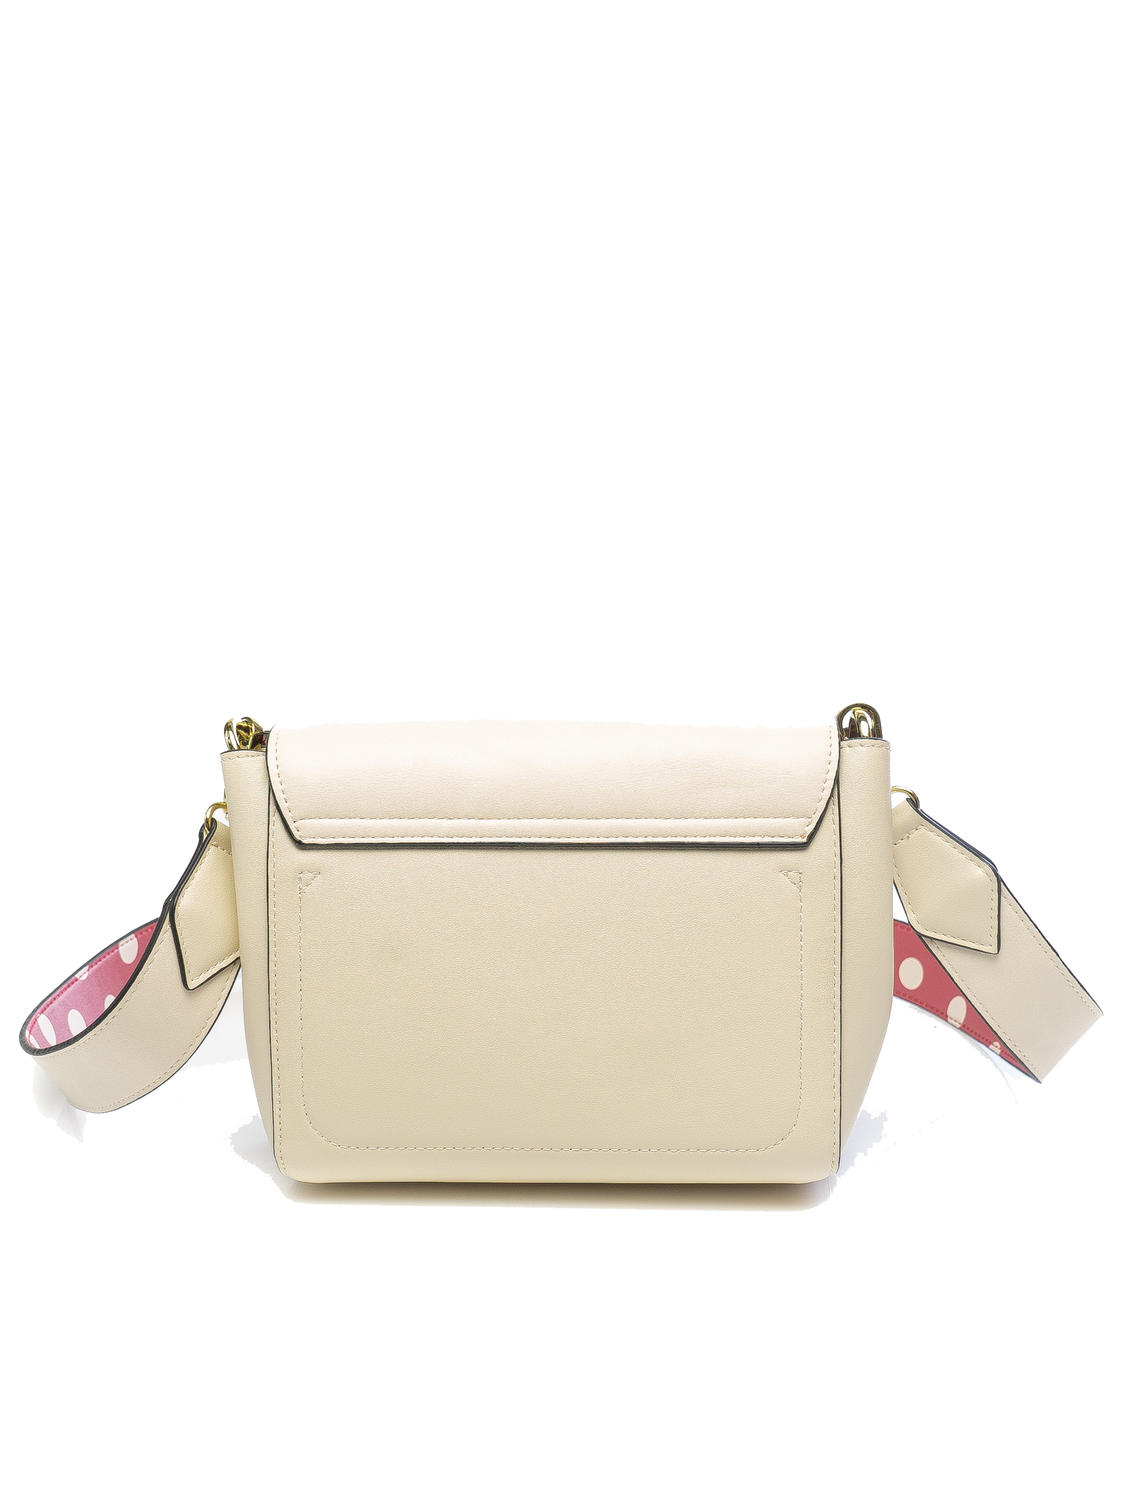 Borse Donna - BREEZE Mini Bag a tracolla